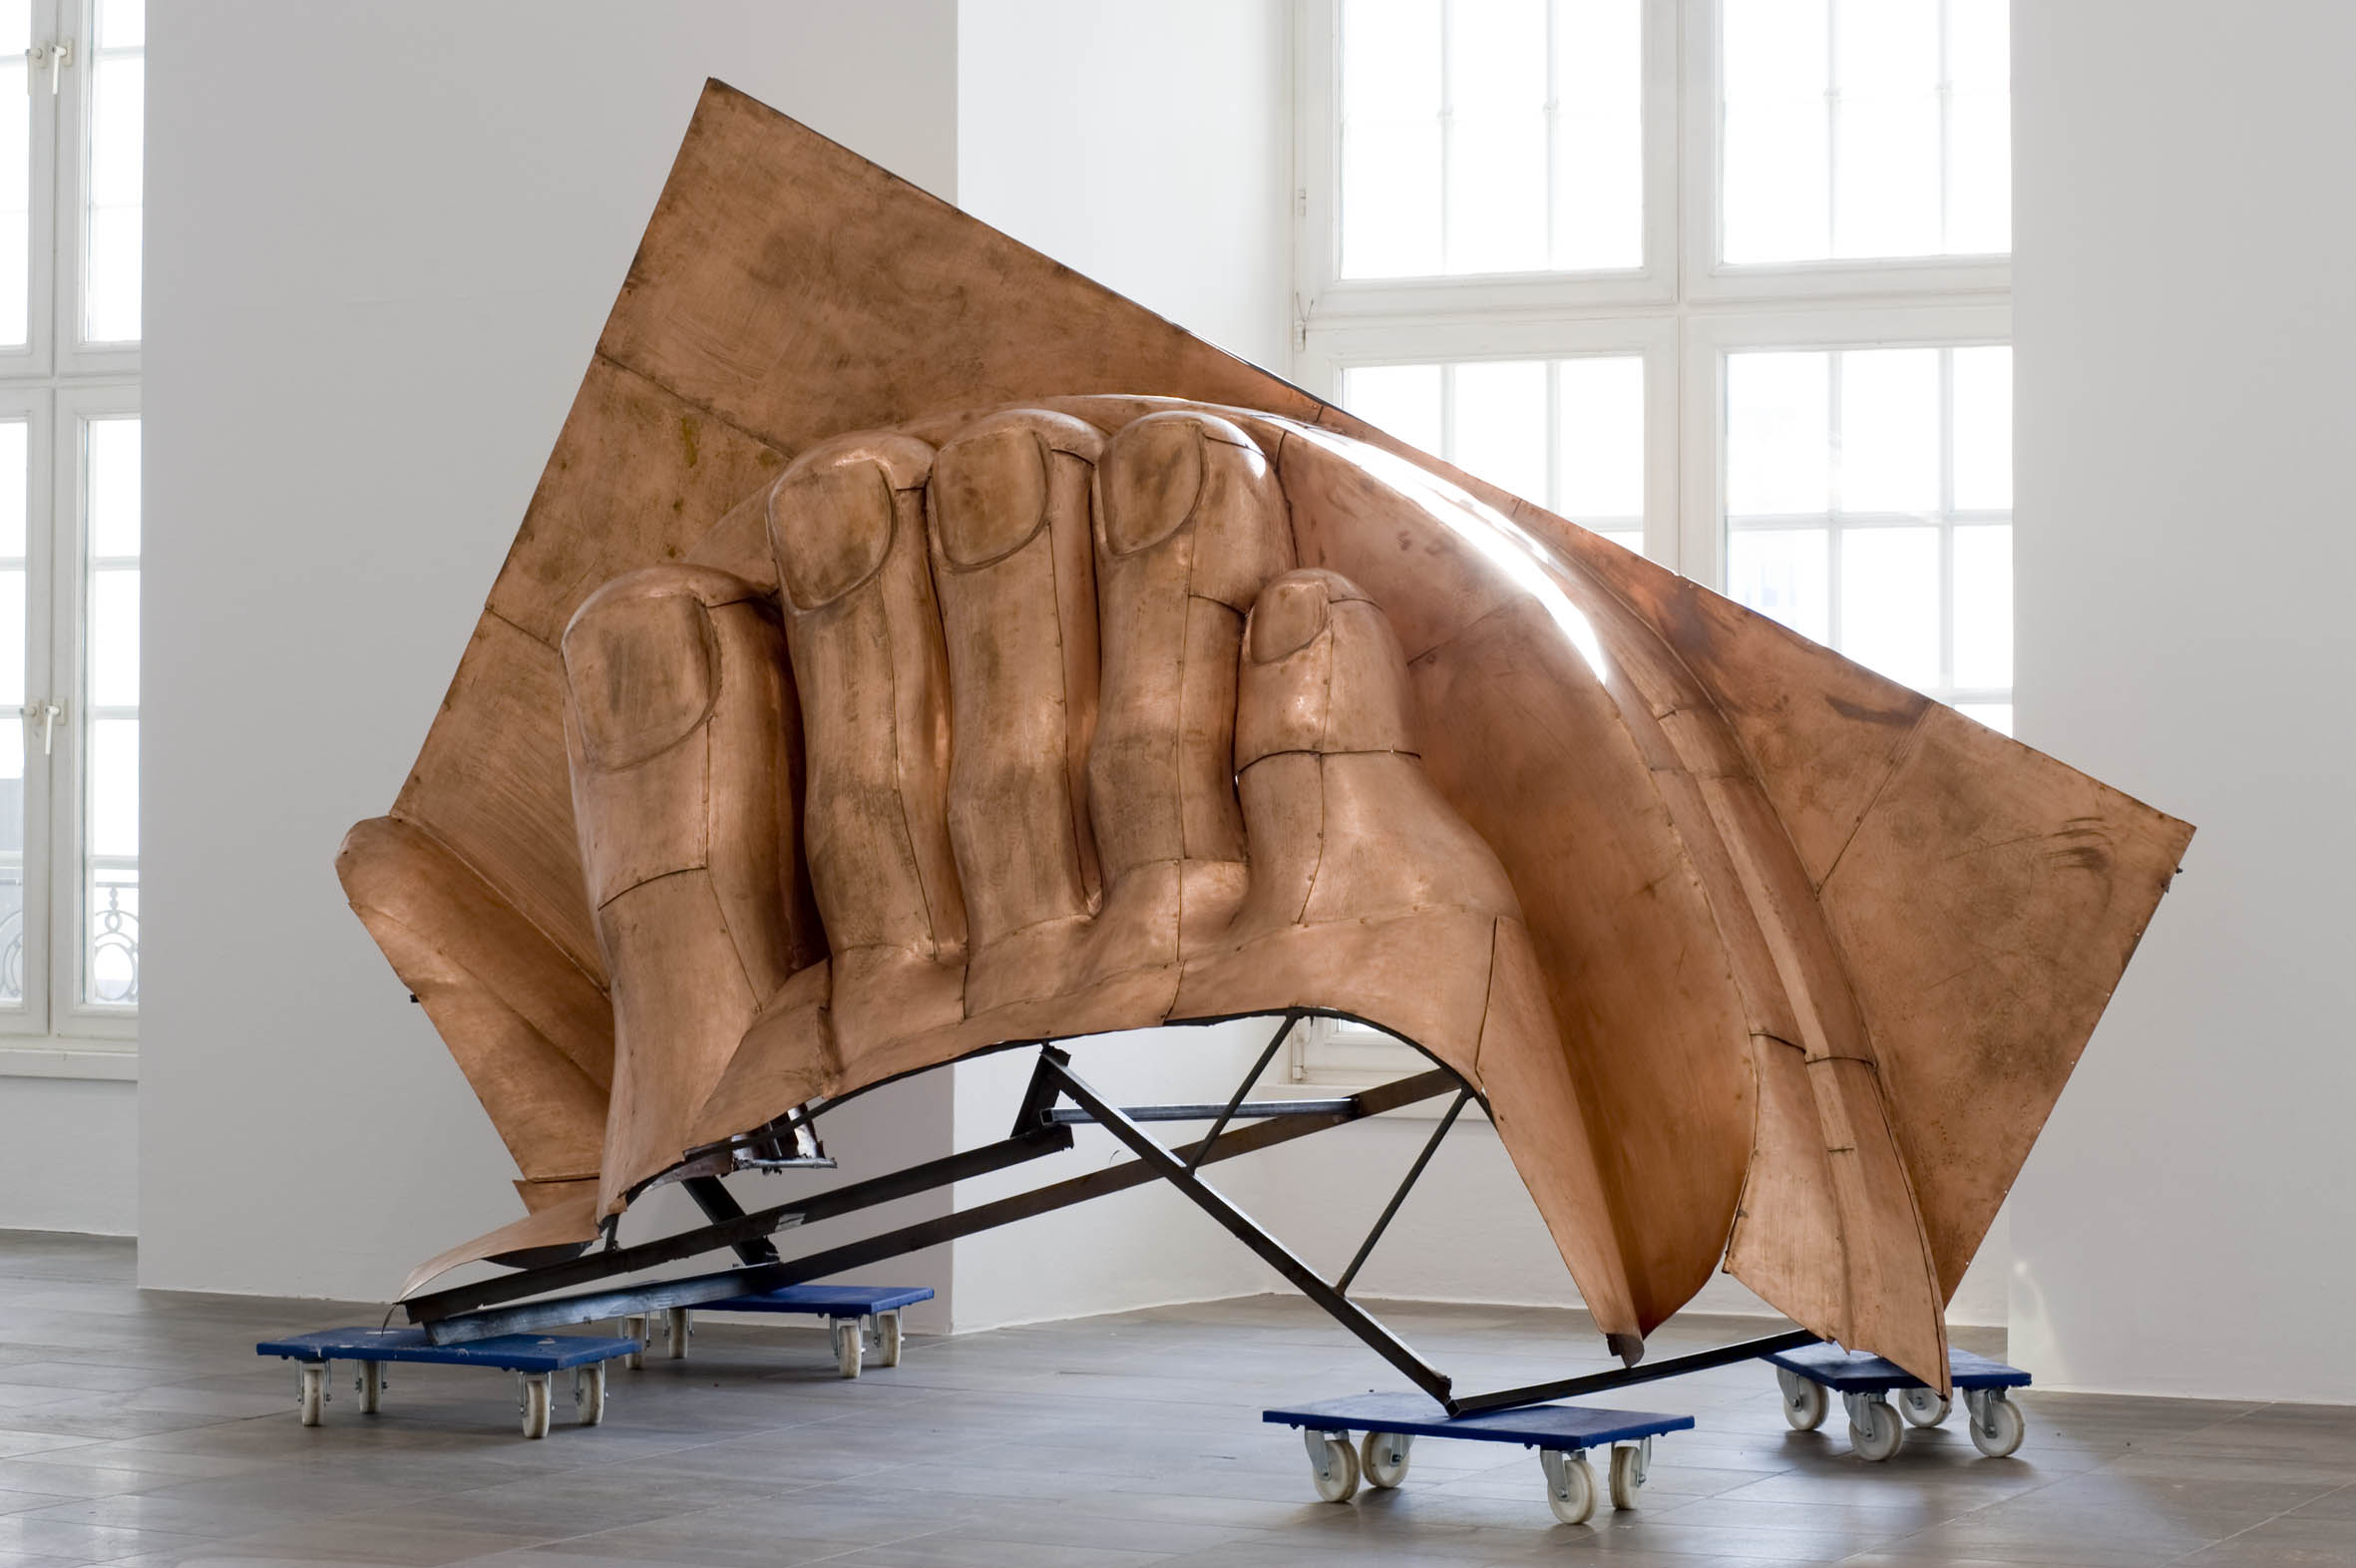 Danh Vo, WE THE PEOPLE (detail), 2011, Courtesy of Galerie Chantal Crousel. Photo: Nils Klinger Quelle: http://www.fridericianum-kassel.de/vo01.html?&L=0